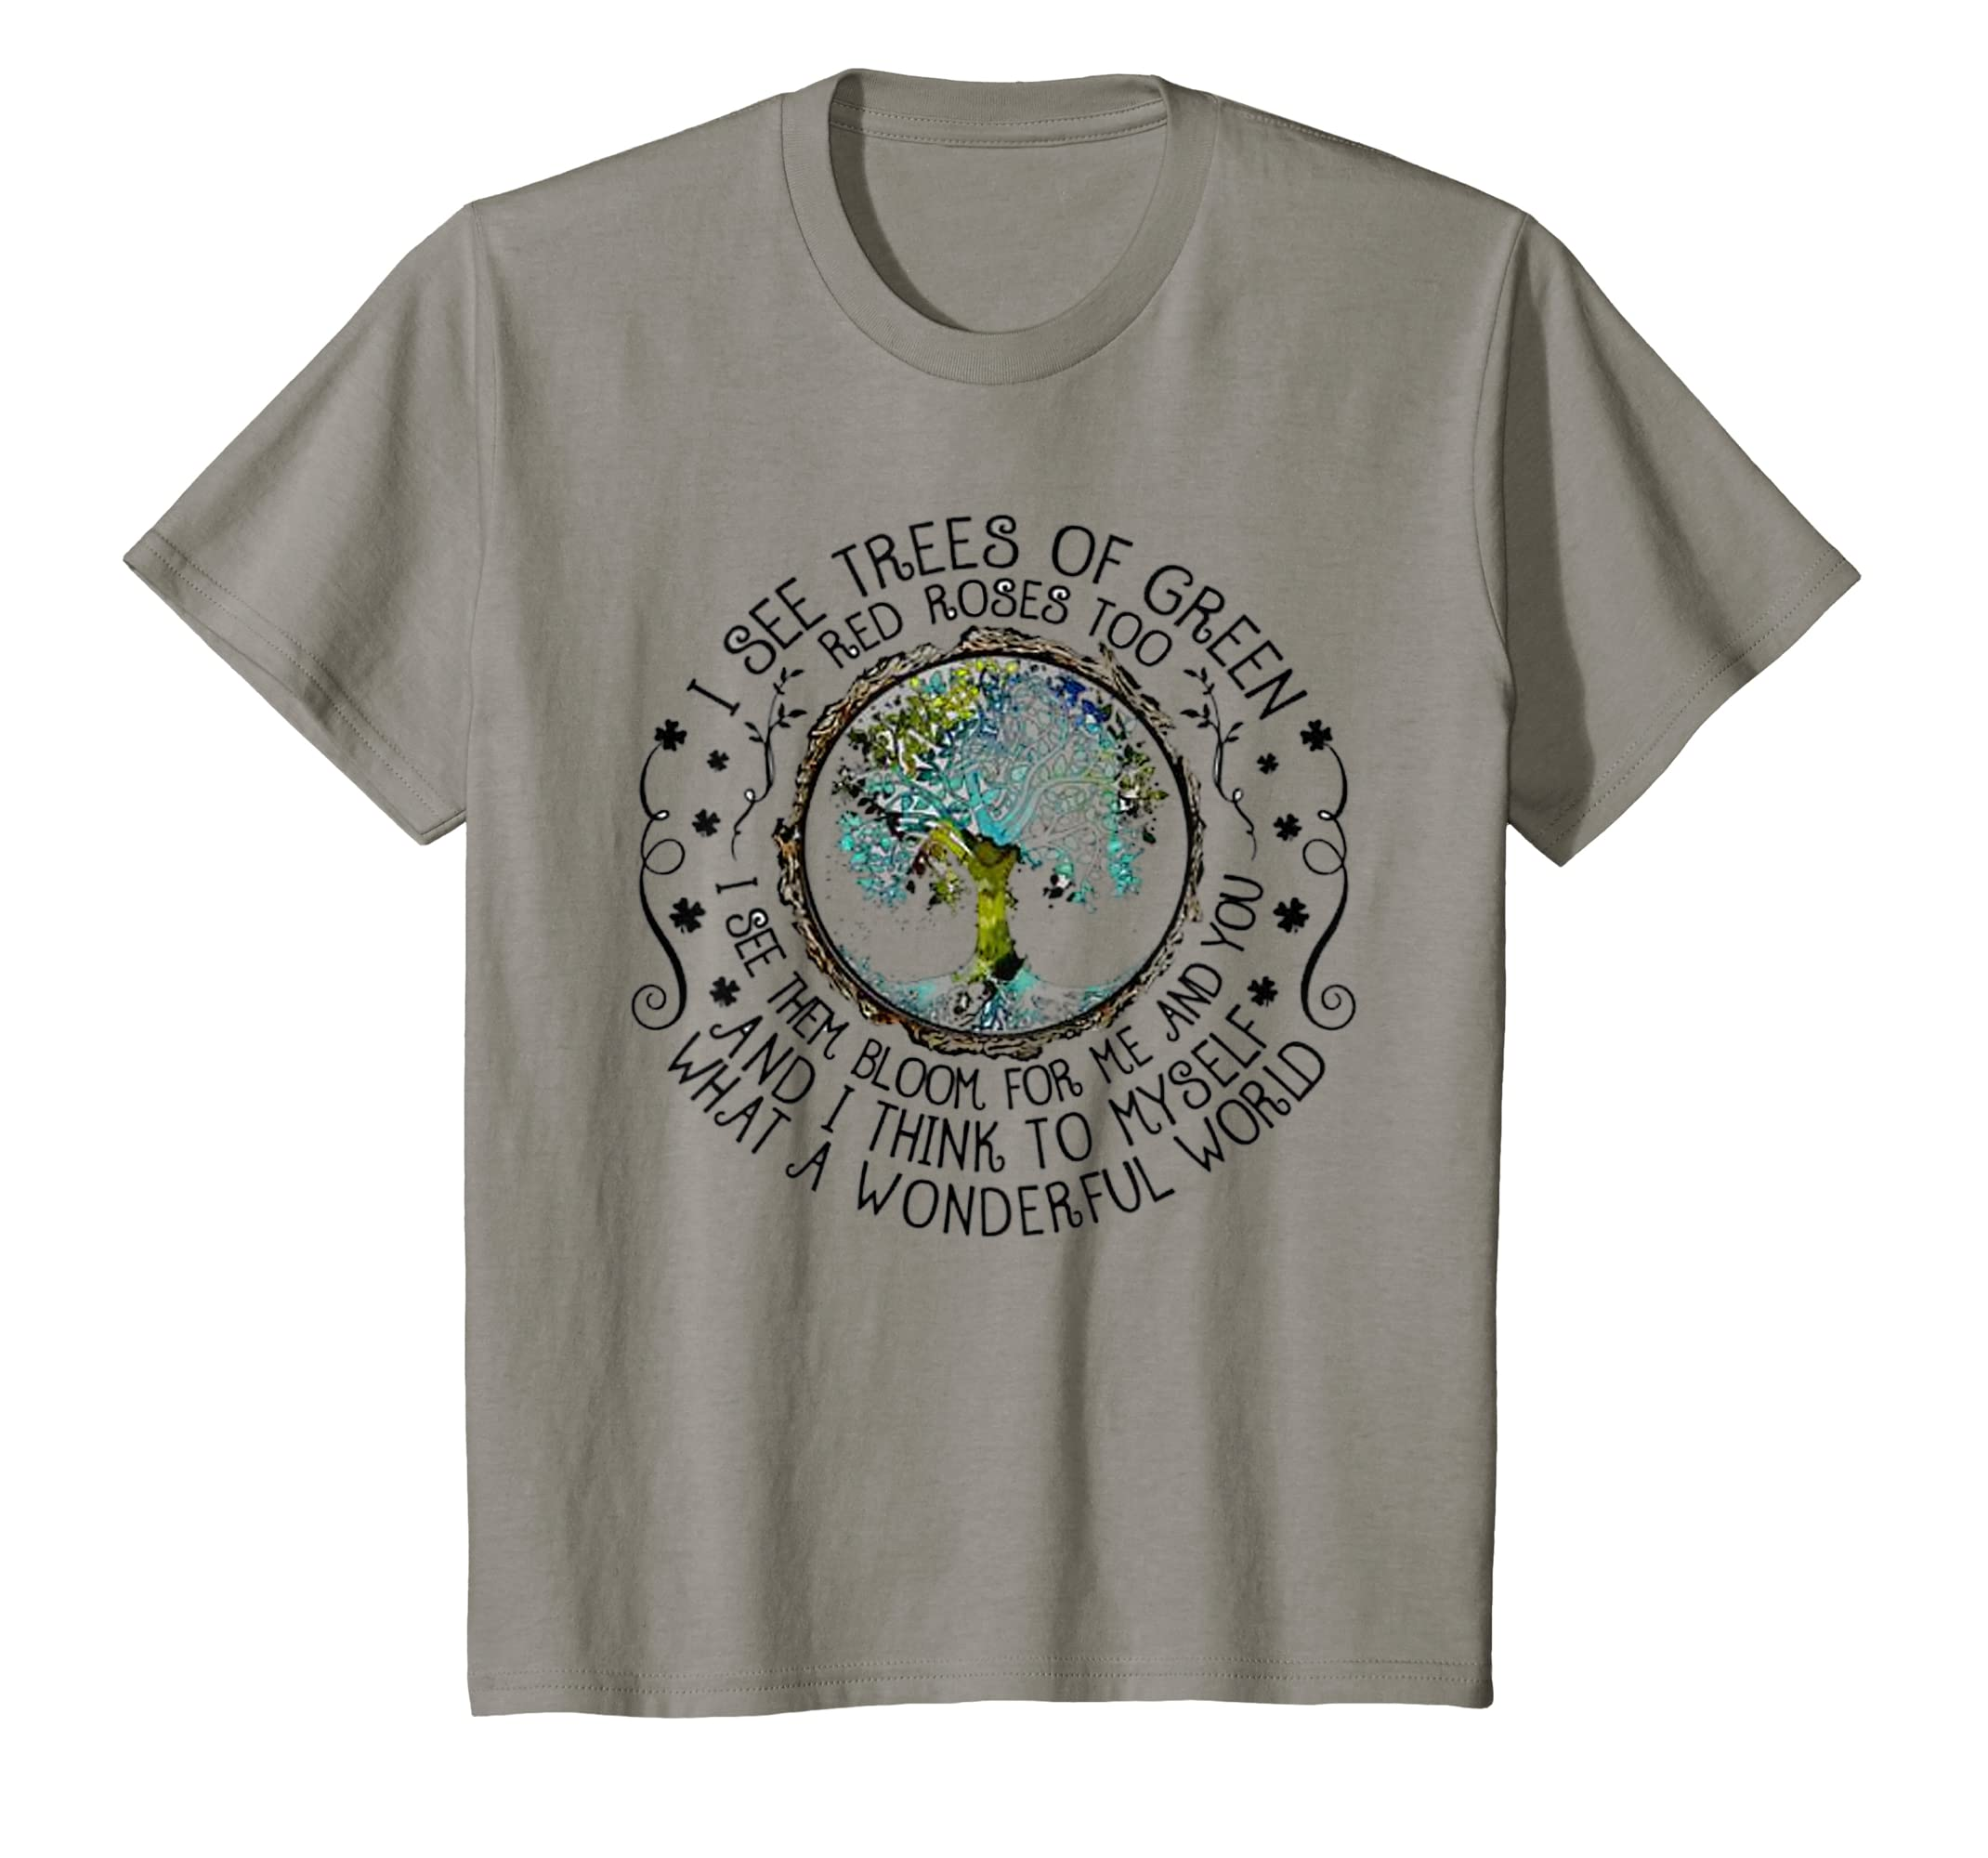 Amazon I See Trees Of Green Red Roses Too Hippie T Shirt Clothing